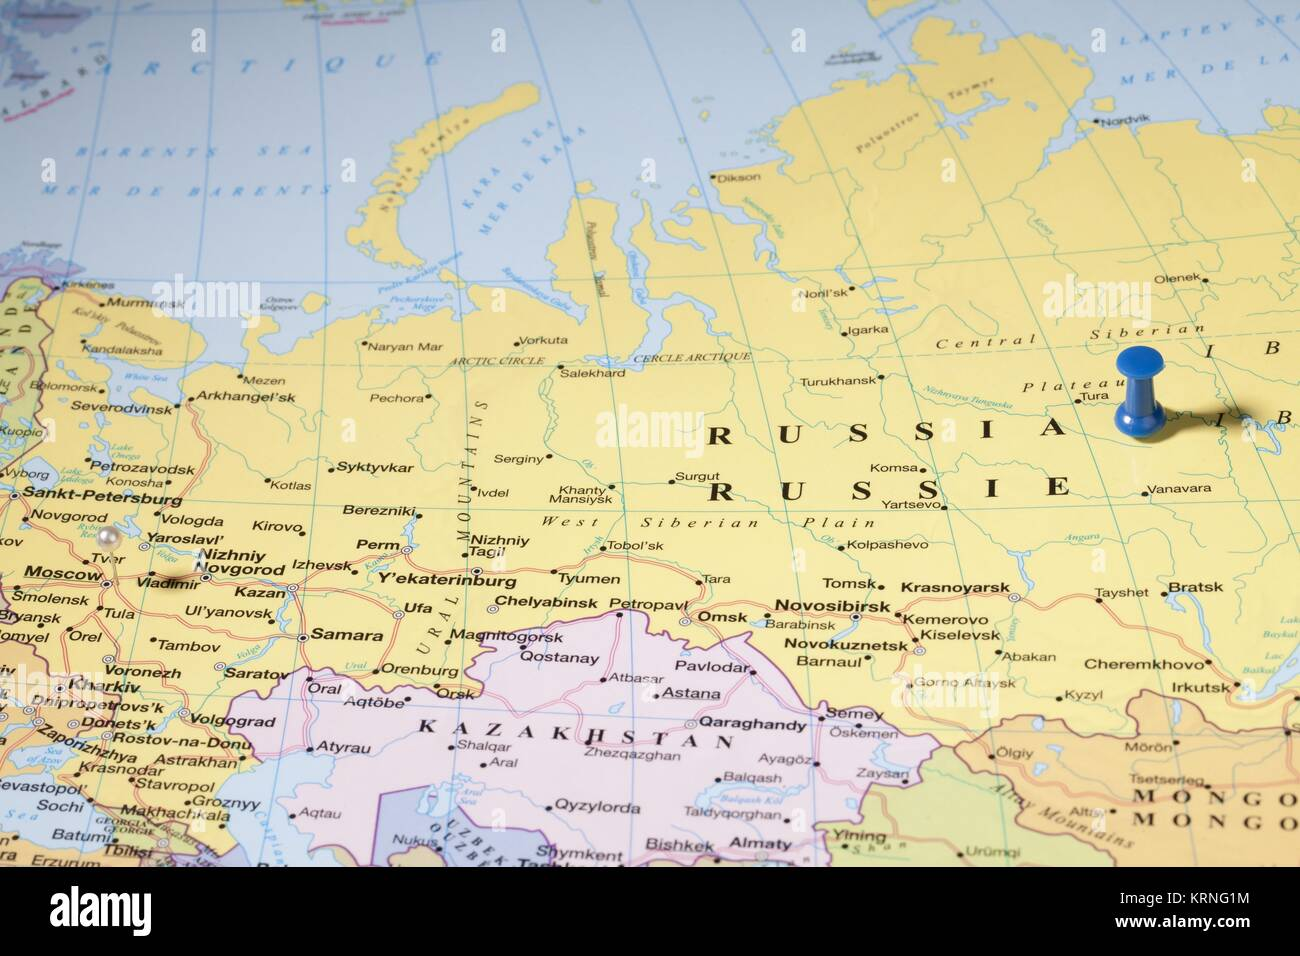 map pins on russian area over world map Stock Photo Royalty Free